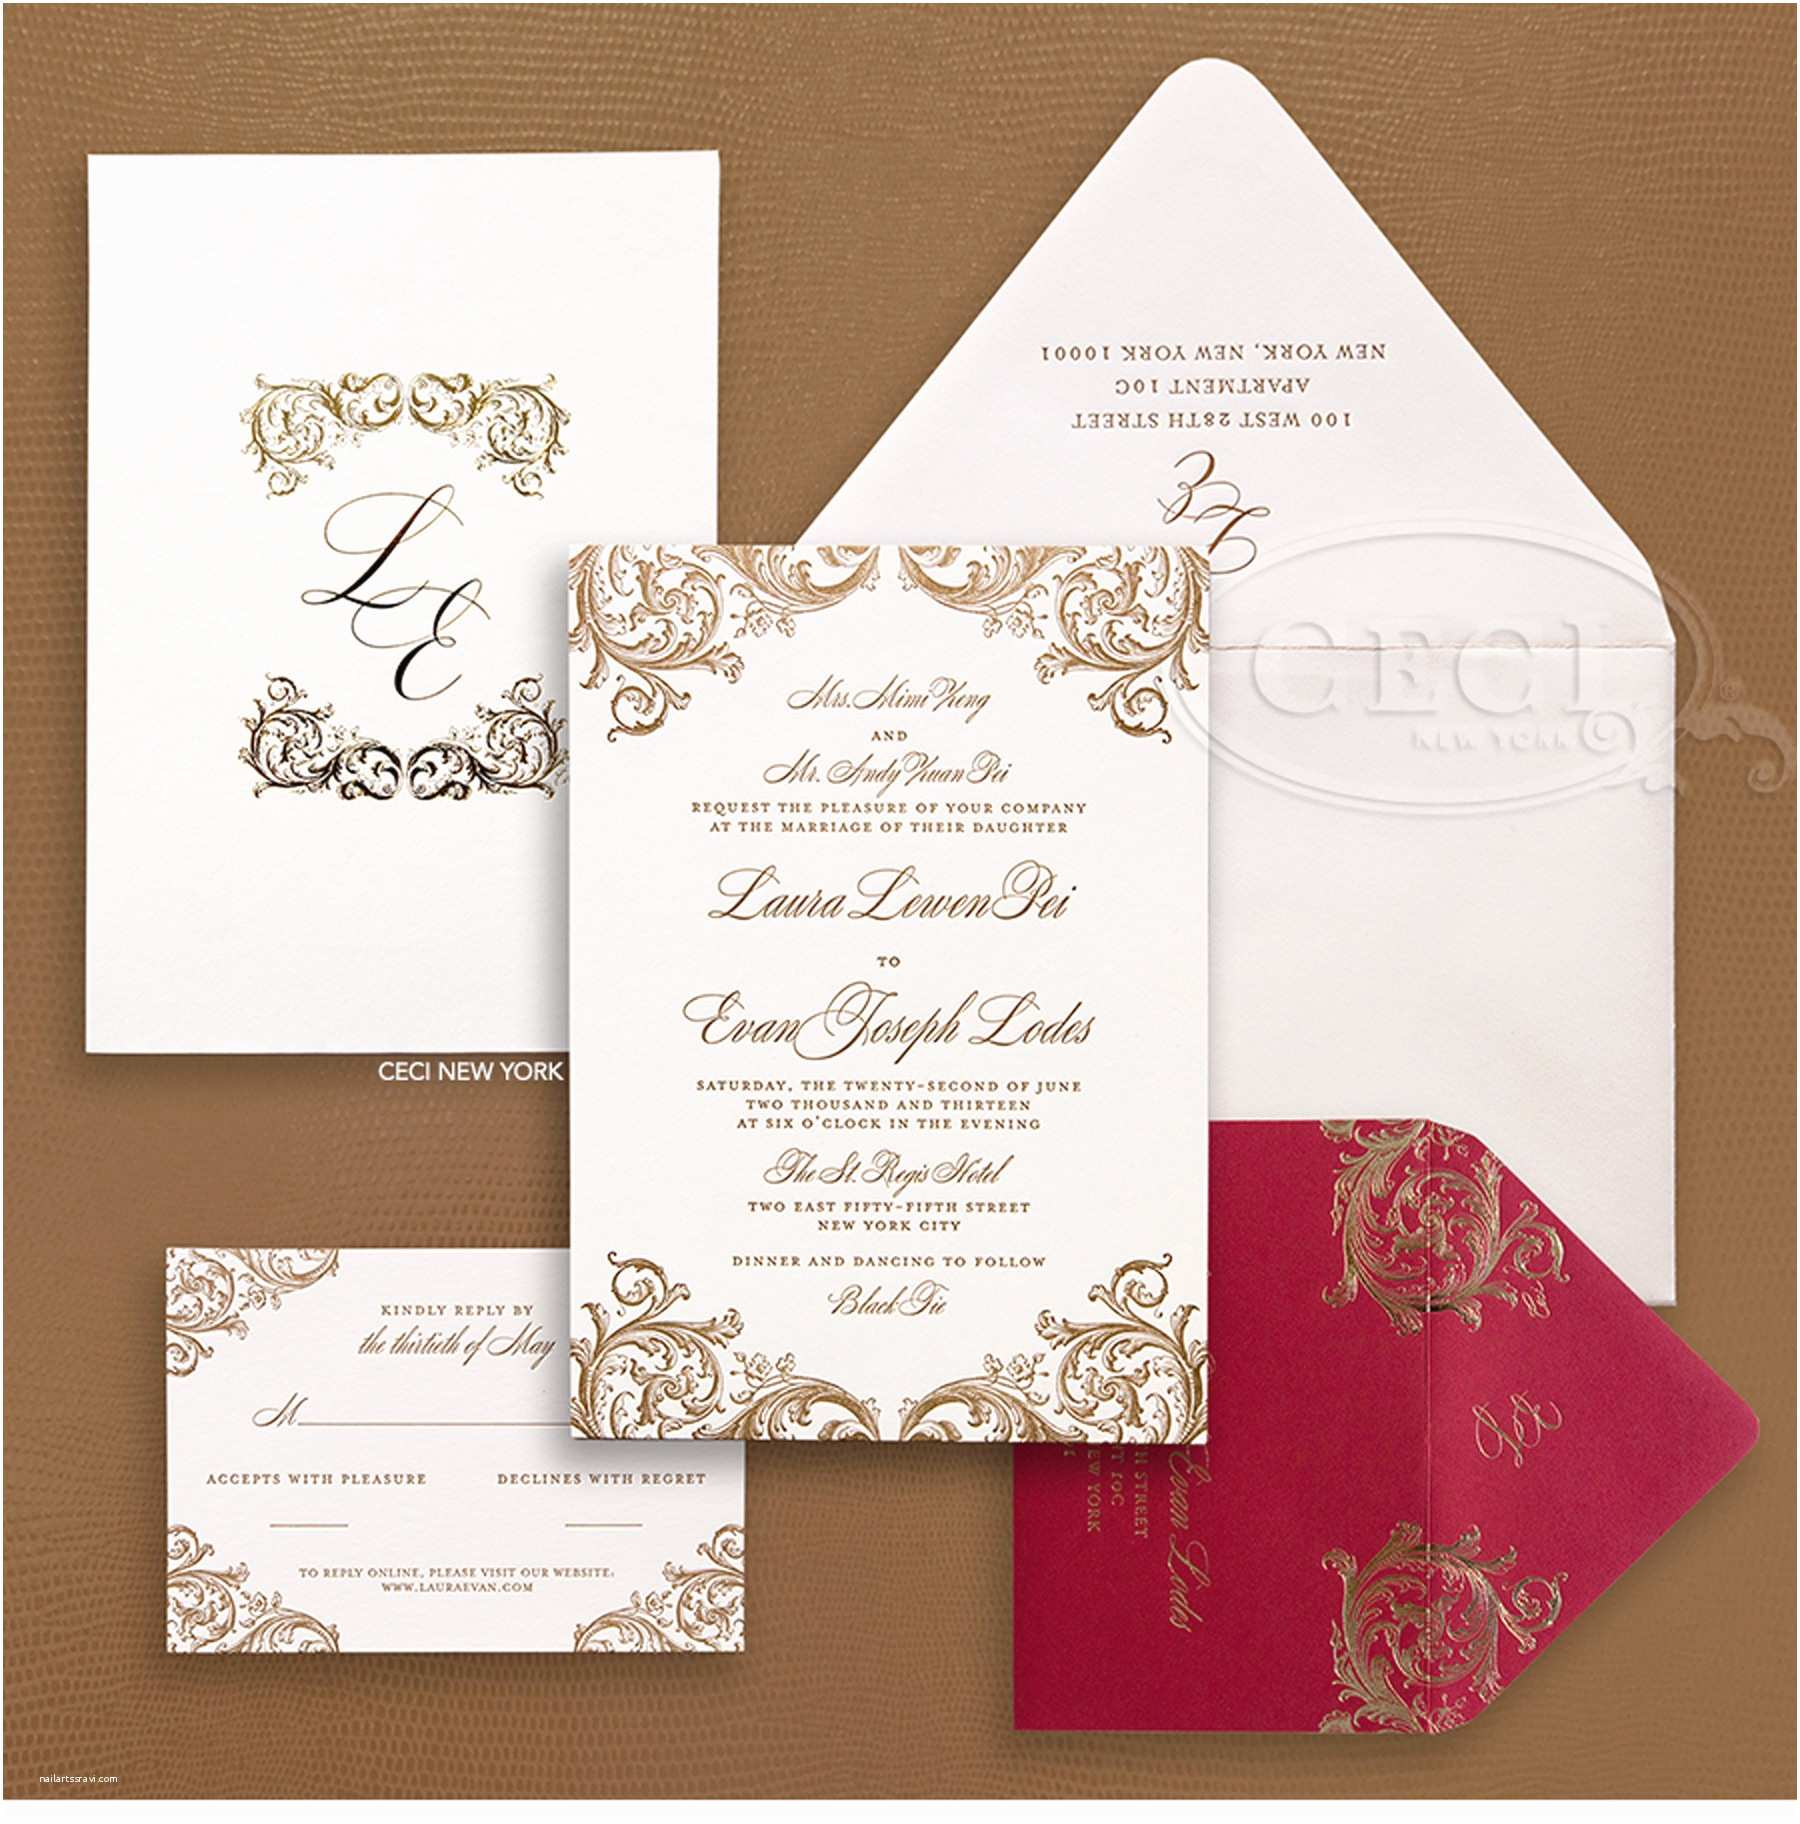 Evite Wedding Invitations Red and Gold Wedding Invitations Red and Gold Wedding